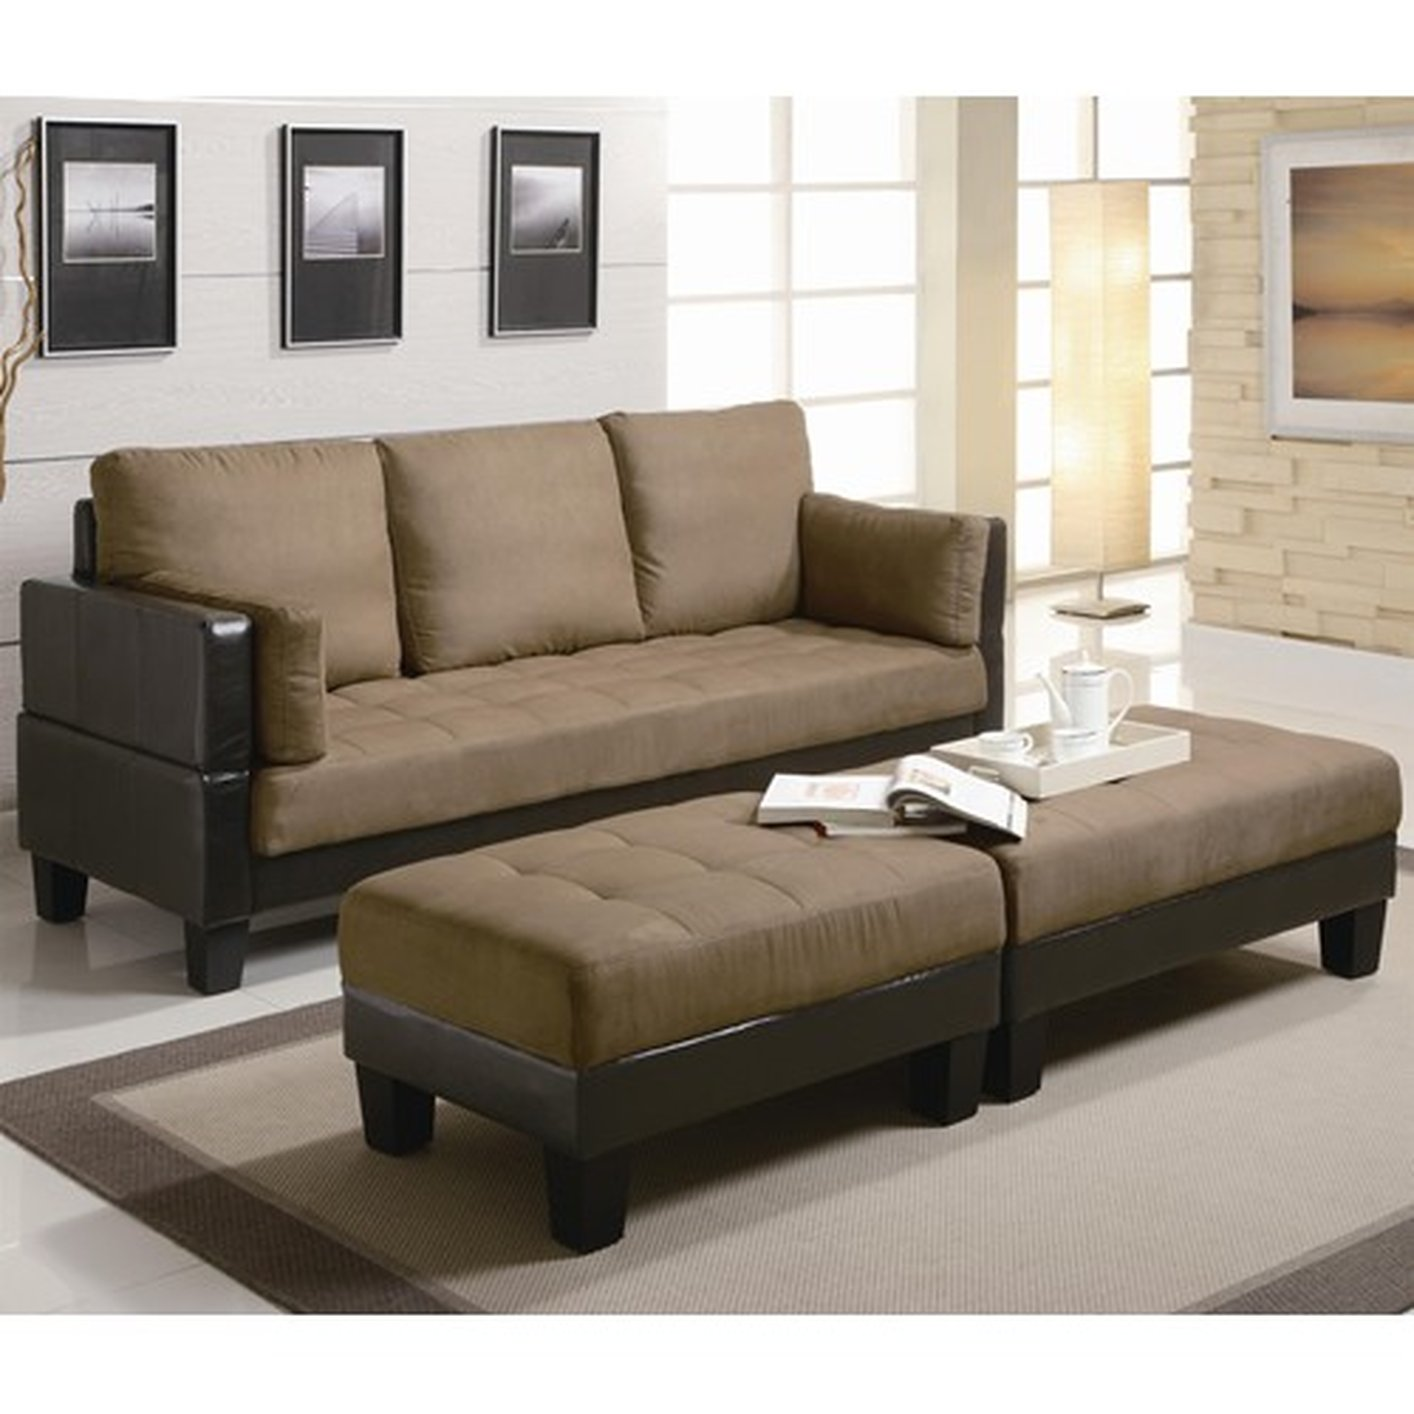 Brown Fabric Sofa Bed and Ottoman Set Steal A Sofa Furniture